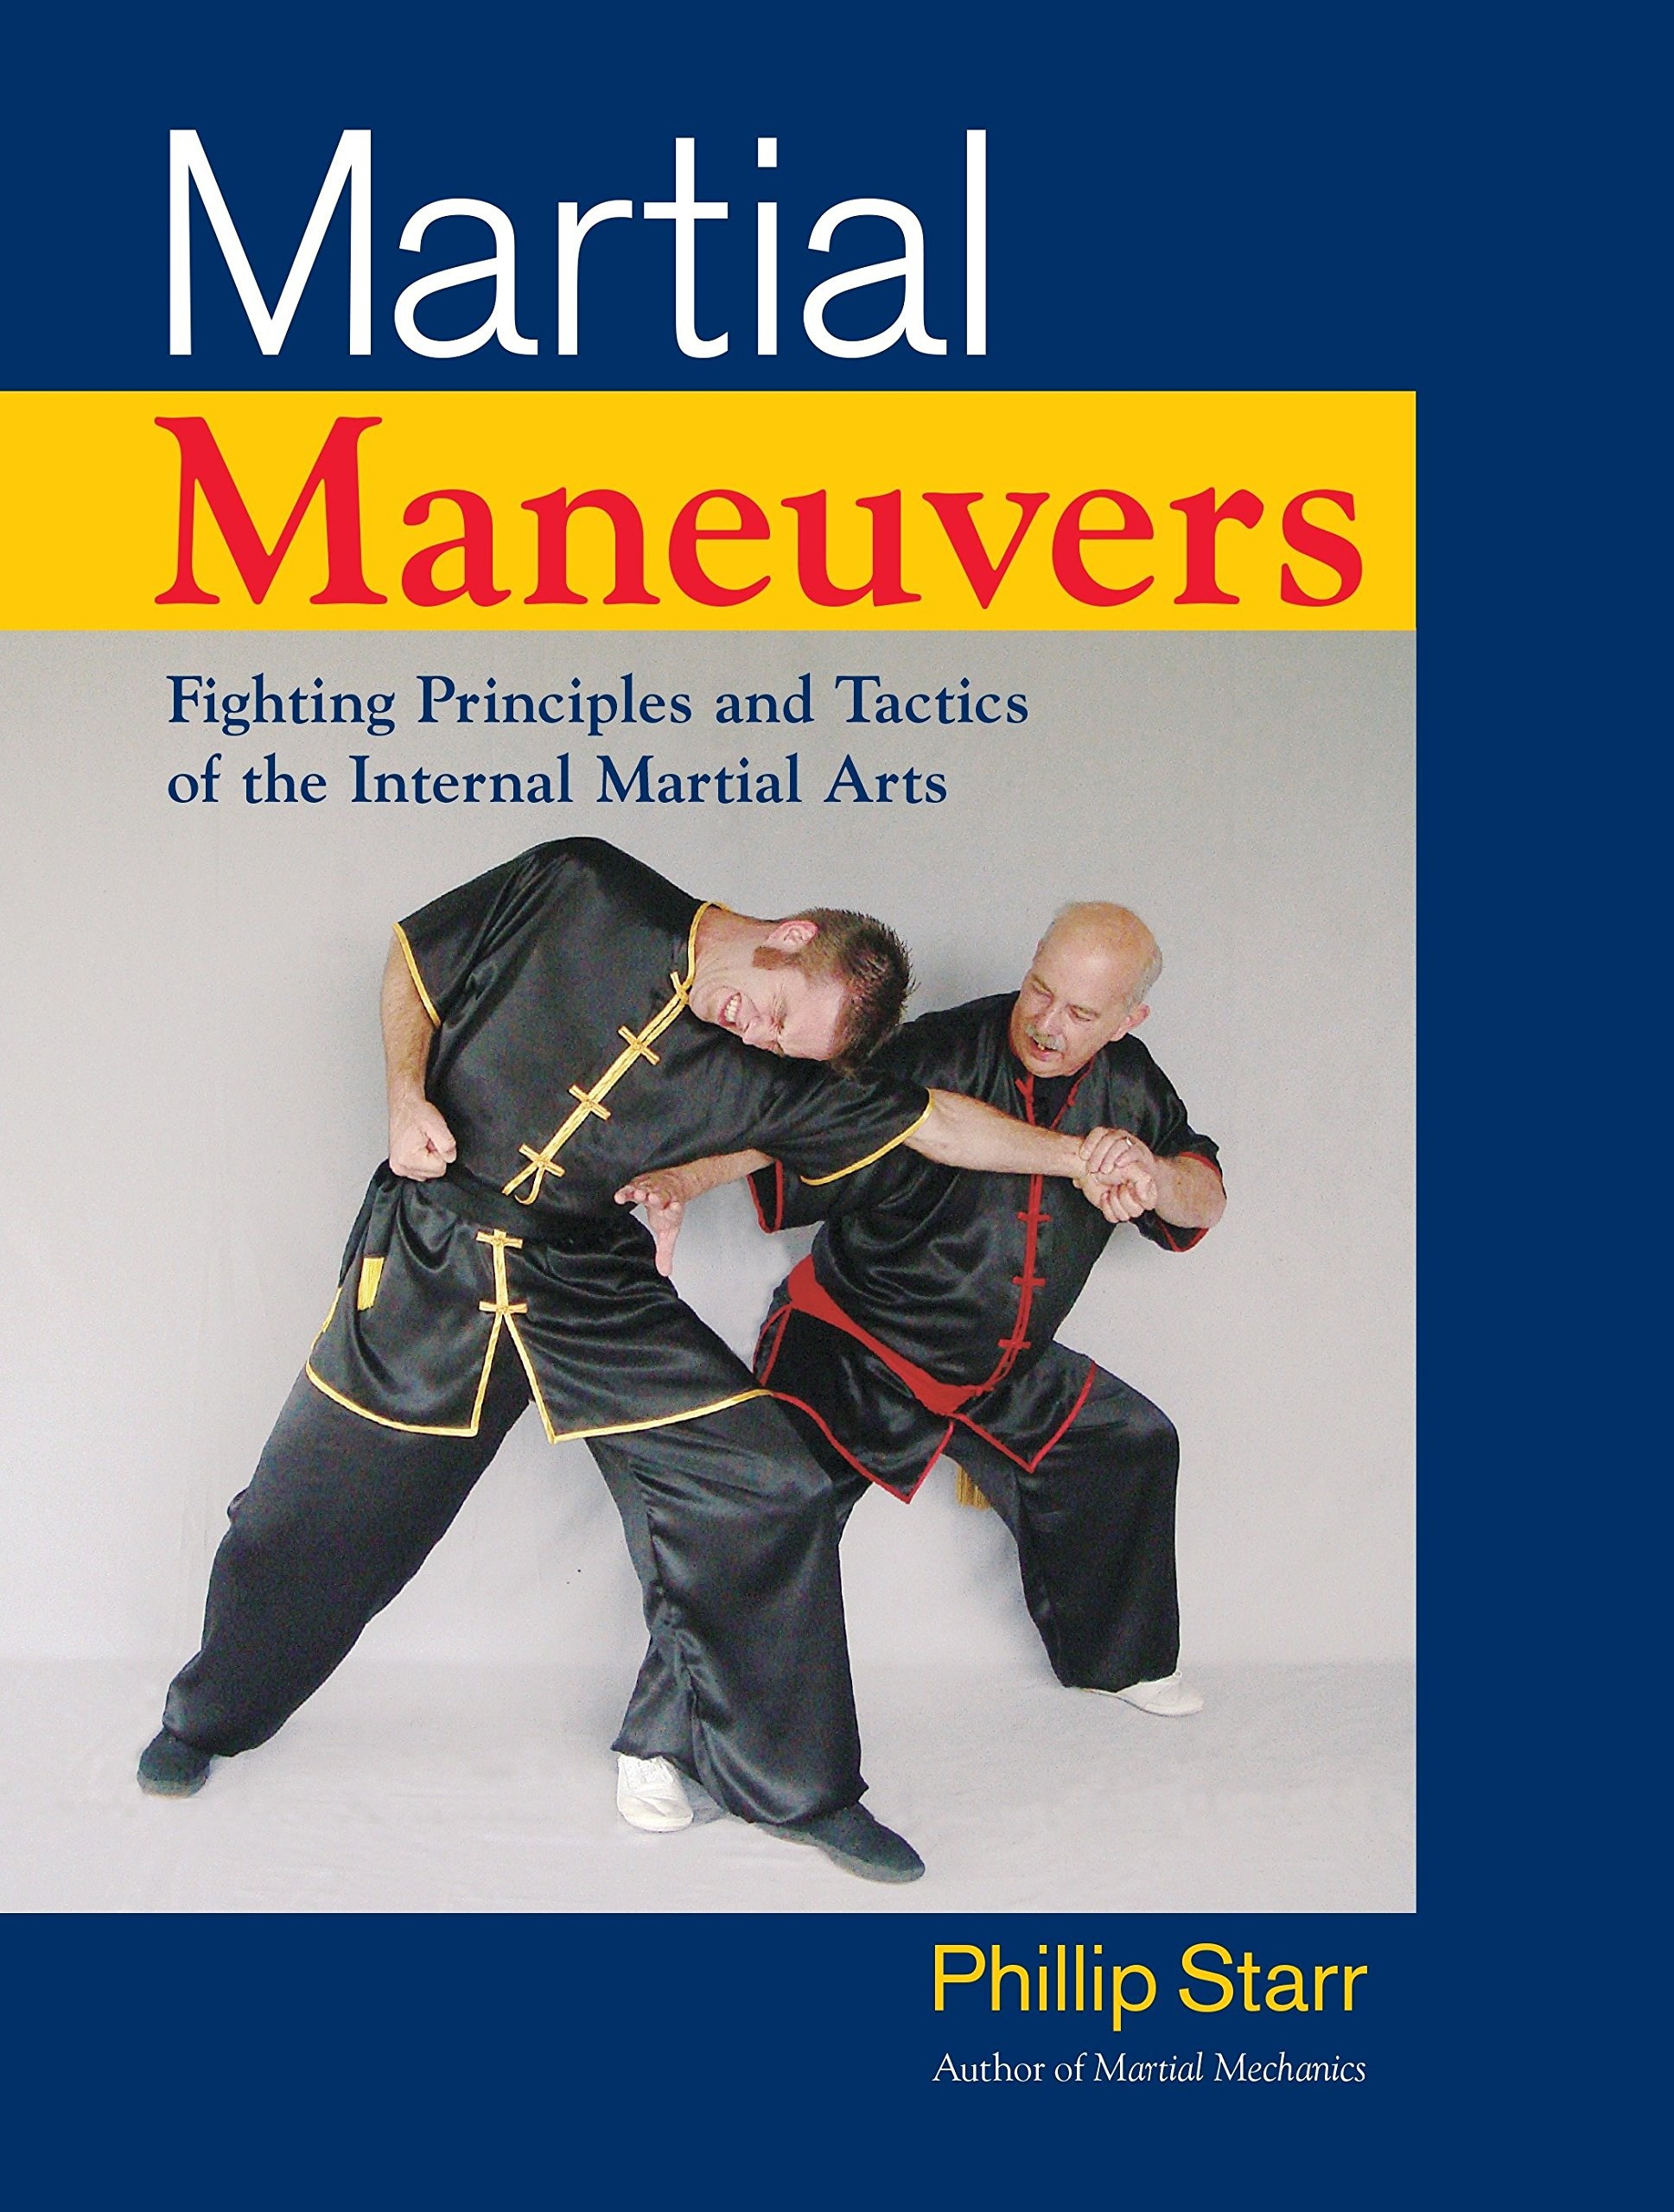 Download Martial Maneuvers: Fighting Principles and Tactics of the Internal Martial Arts pdf